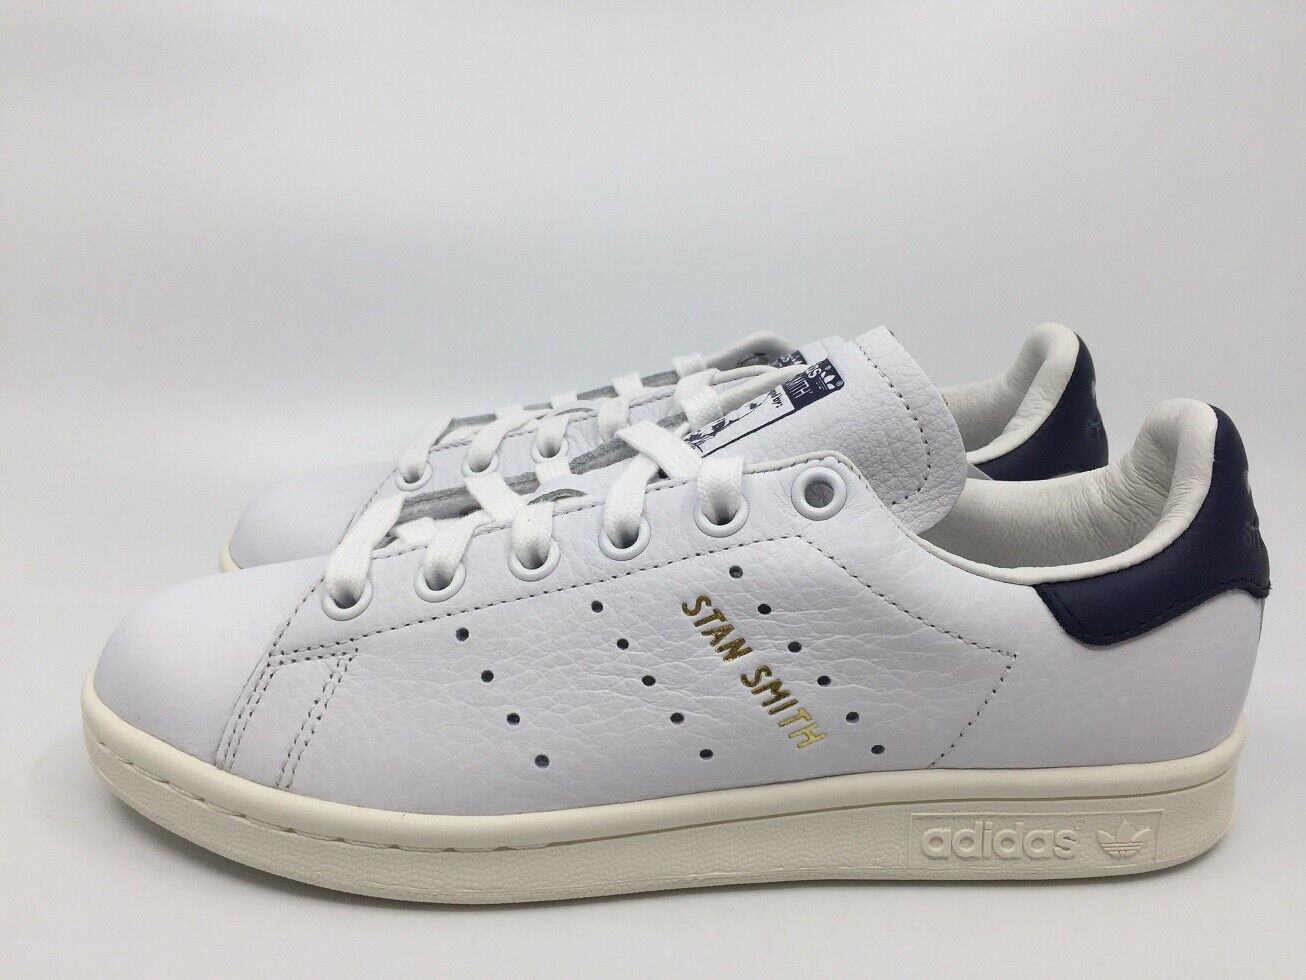 Adidas Stan Smith CQ2870 ftw white noble ink Sneaker